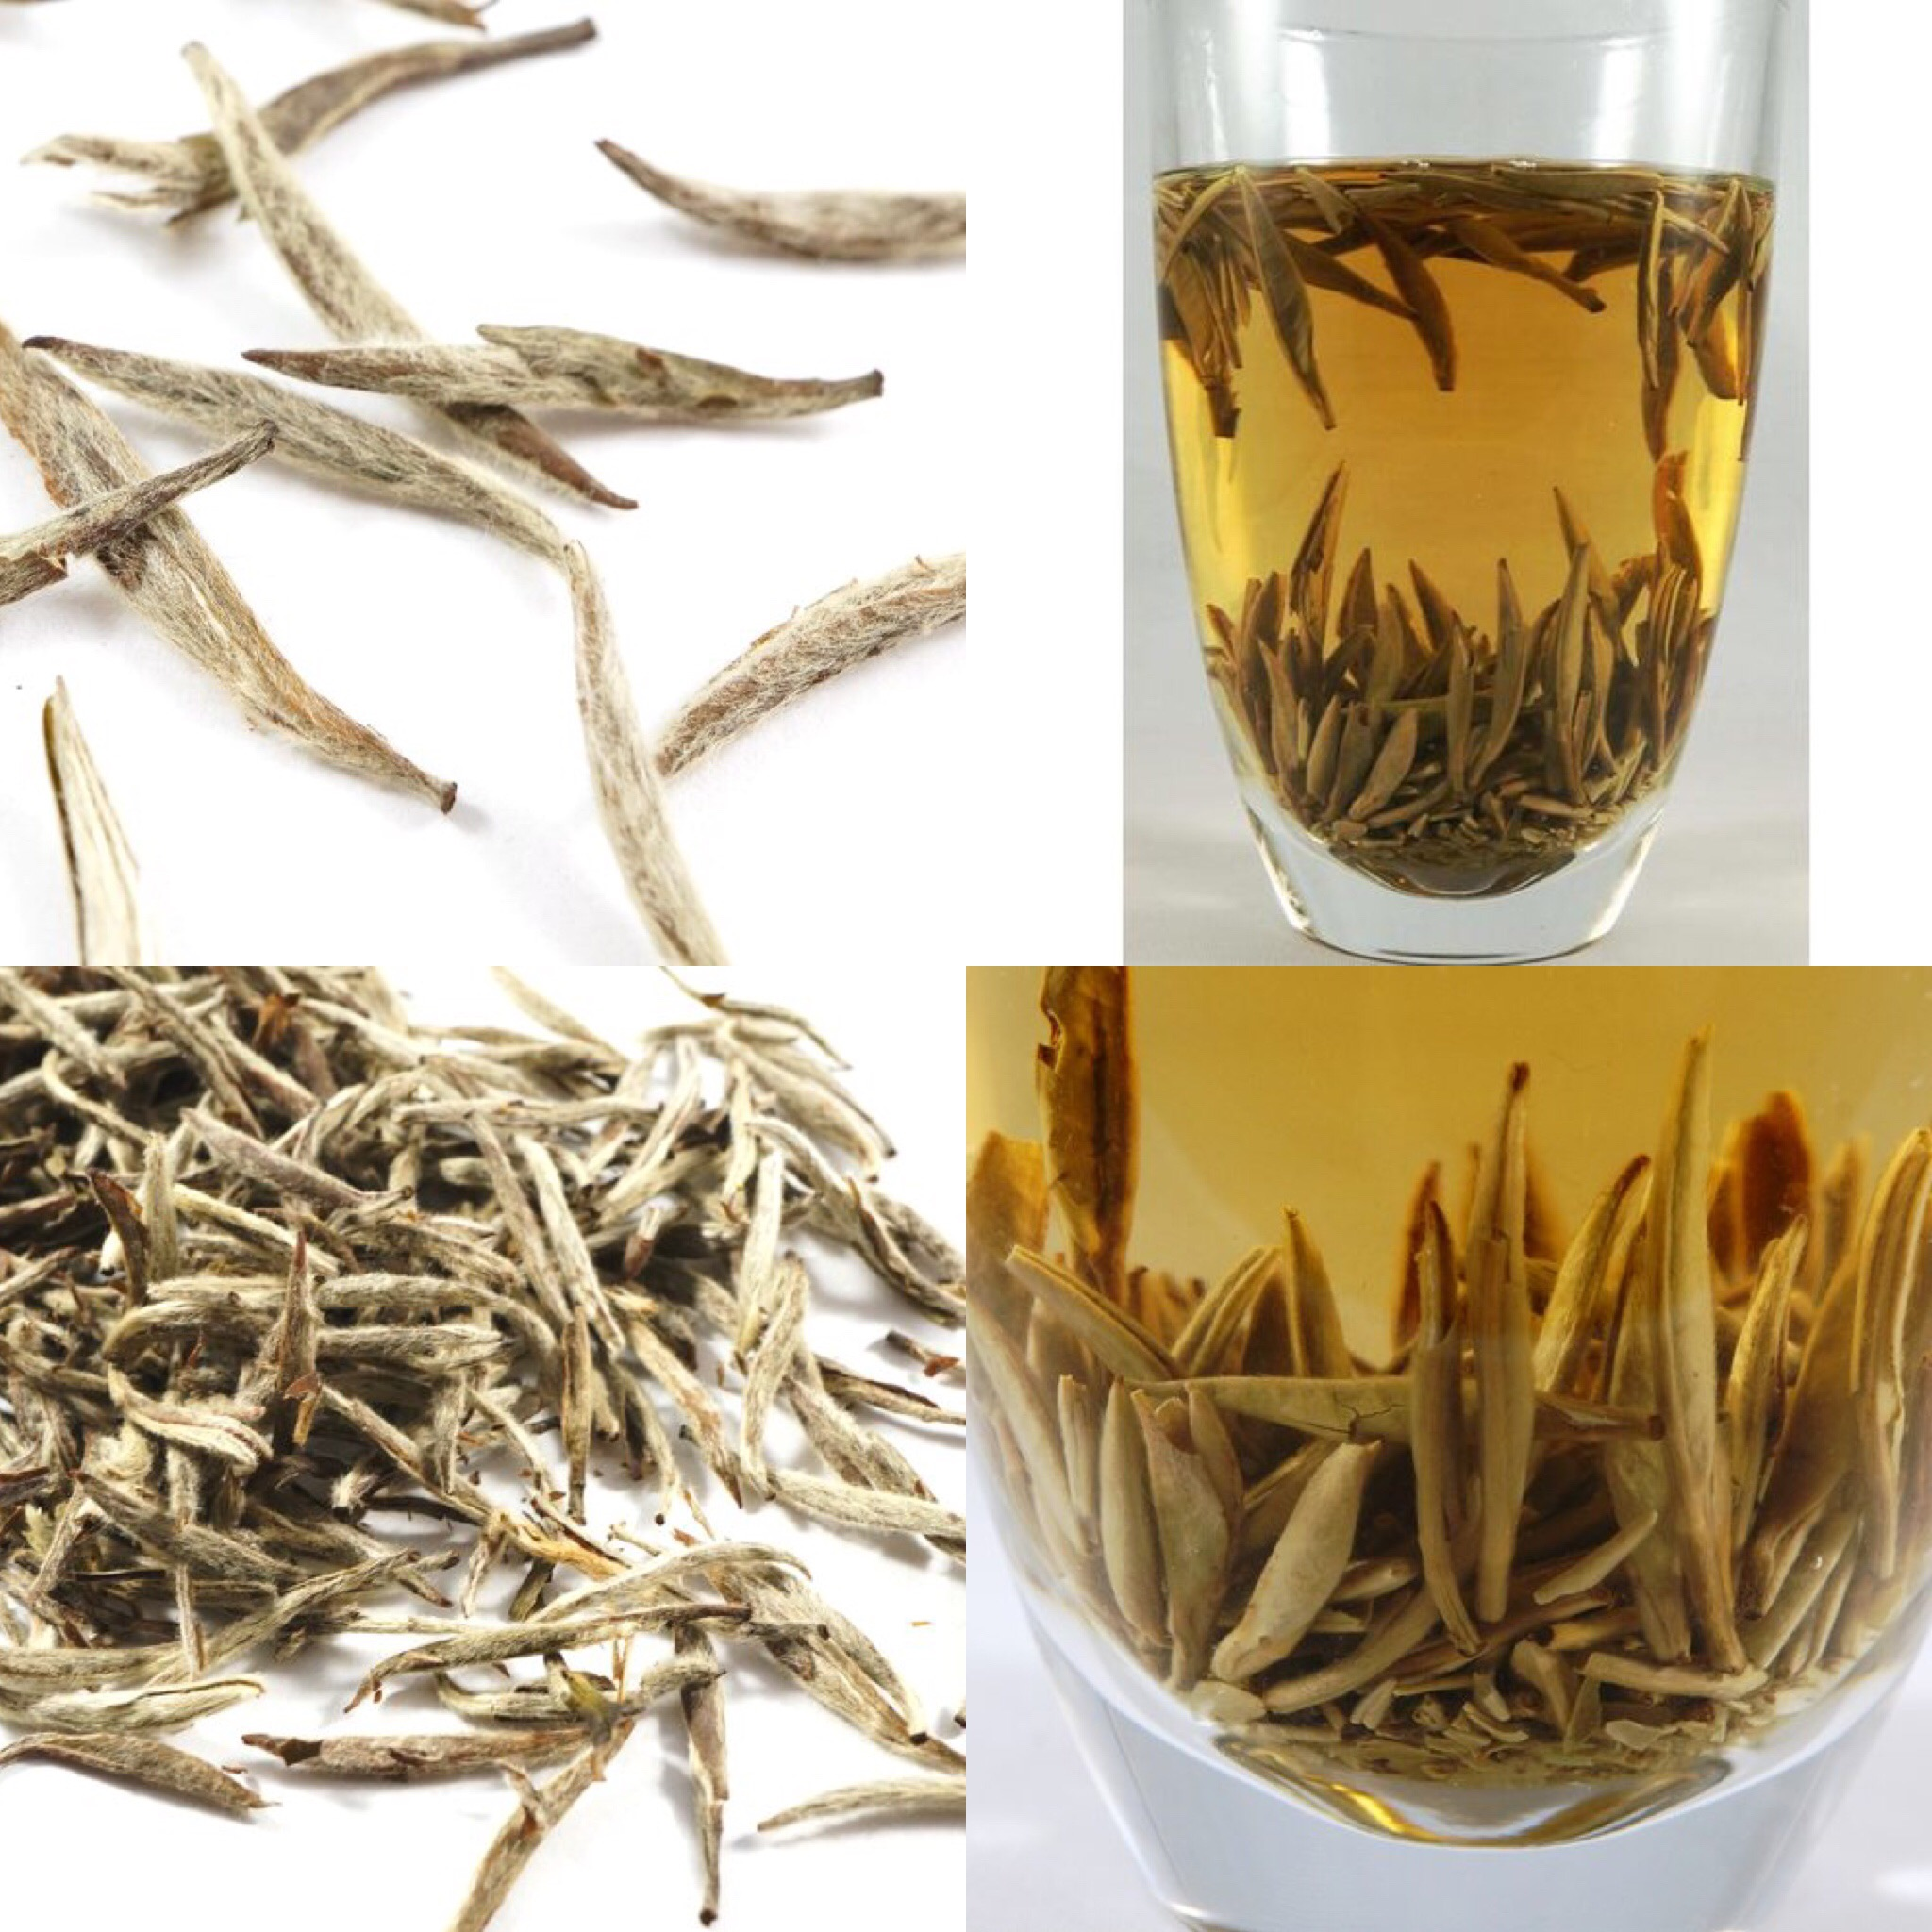 Aged (5 years) Silver Needle White Tea